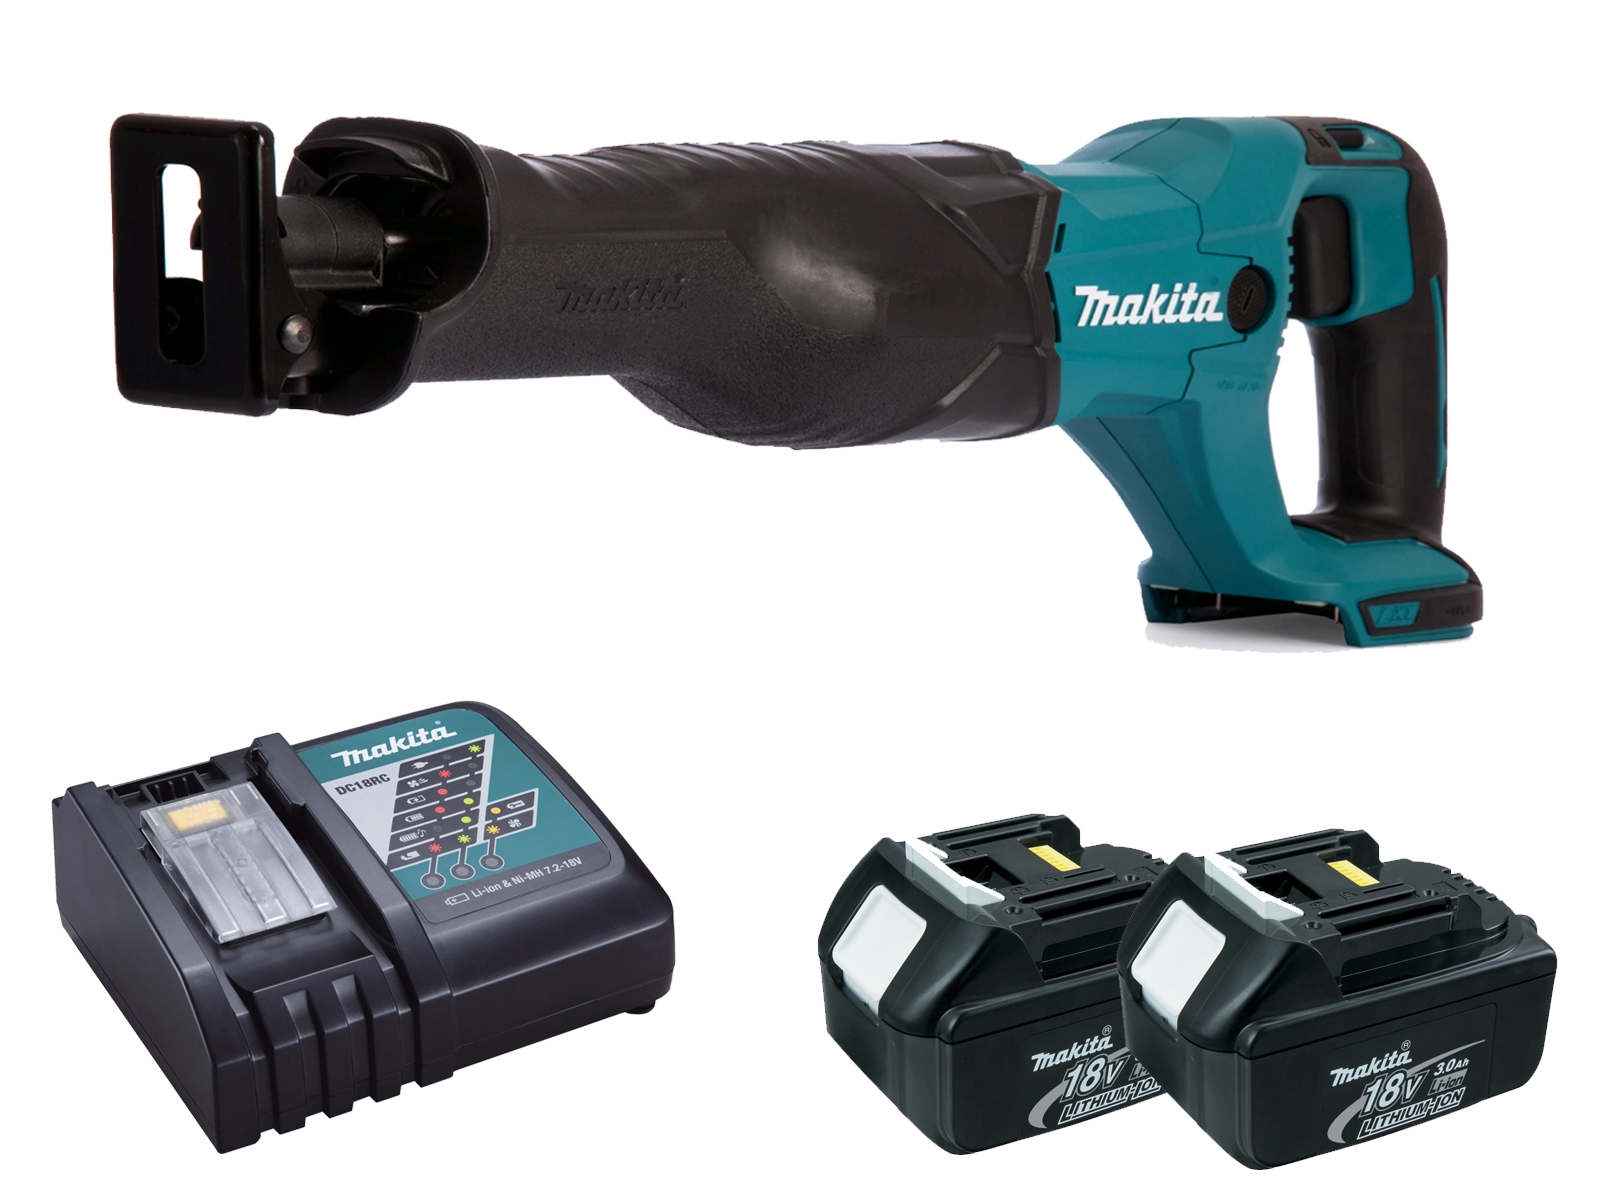 Makita DJR186 18V Brushed Reciprocating Saw LXT - 3.0ah Pack